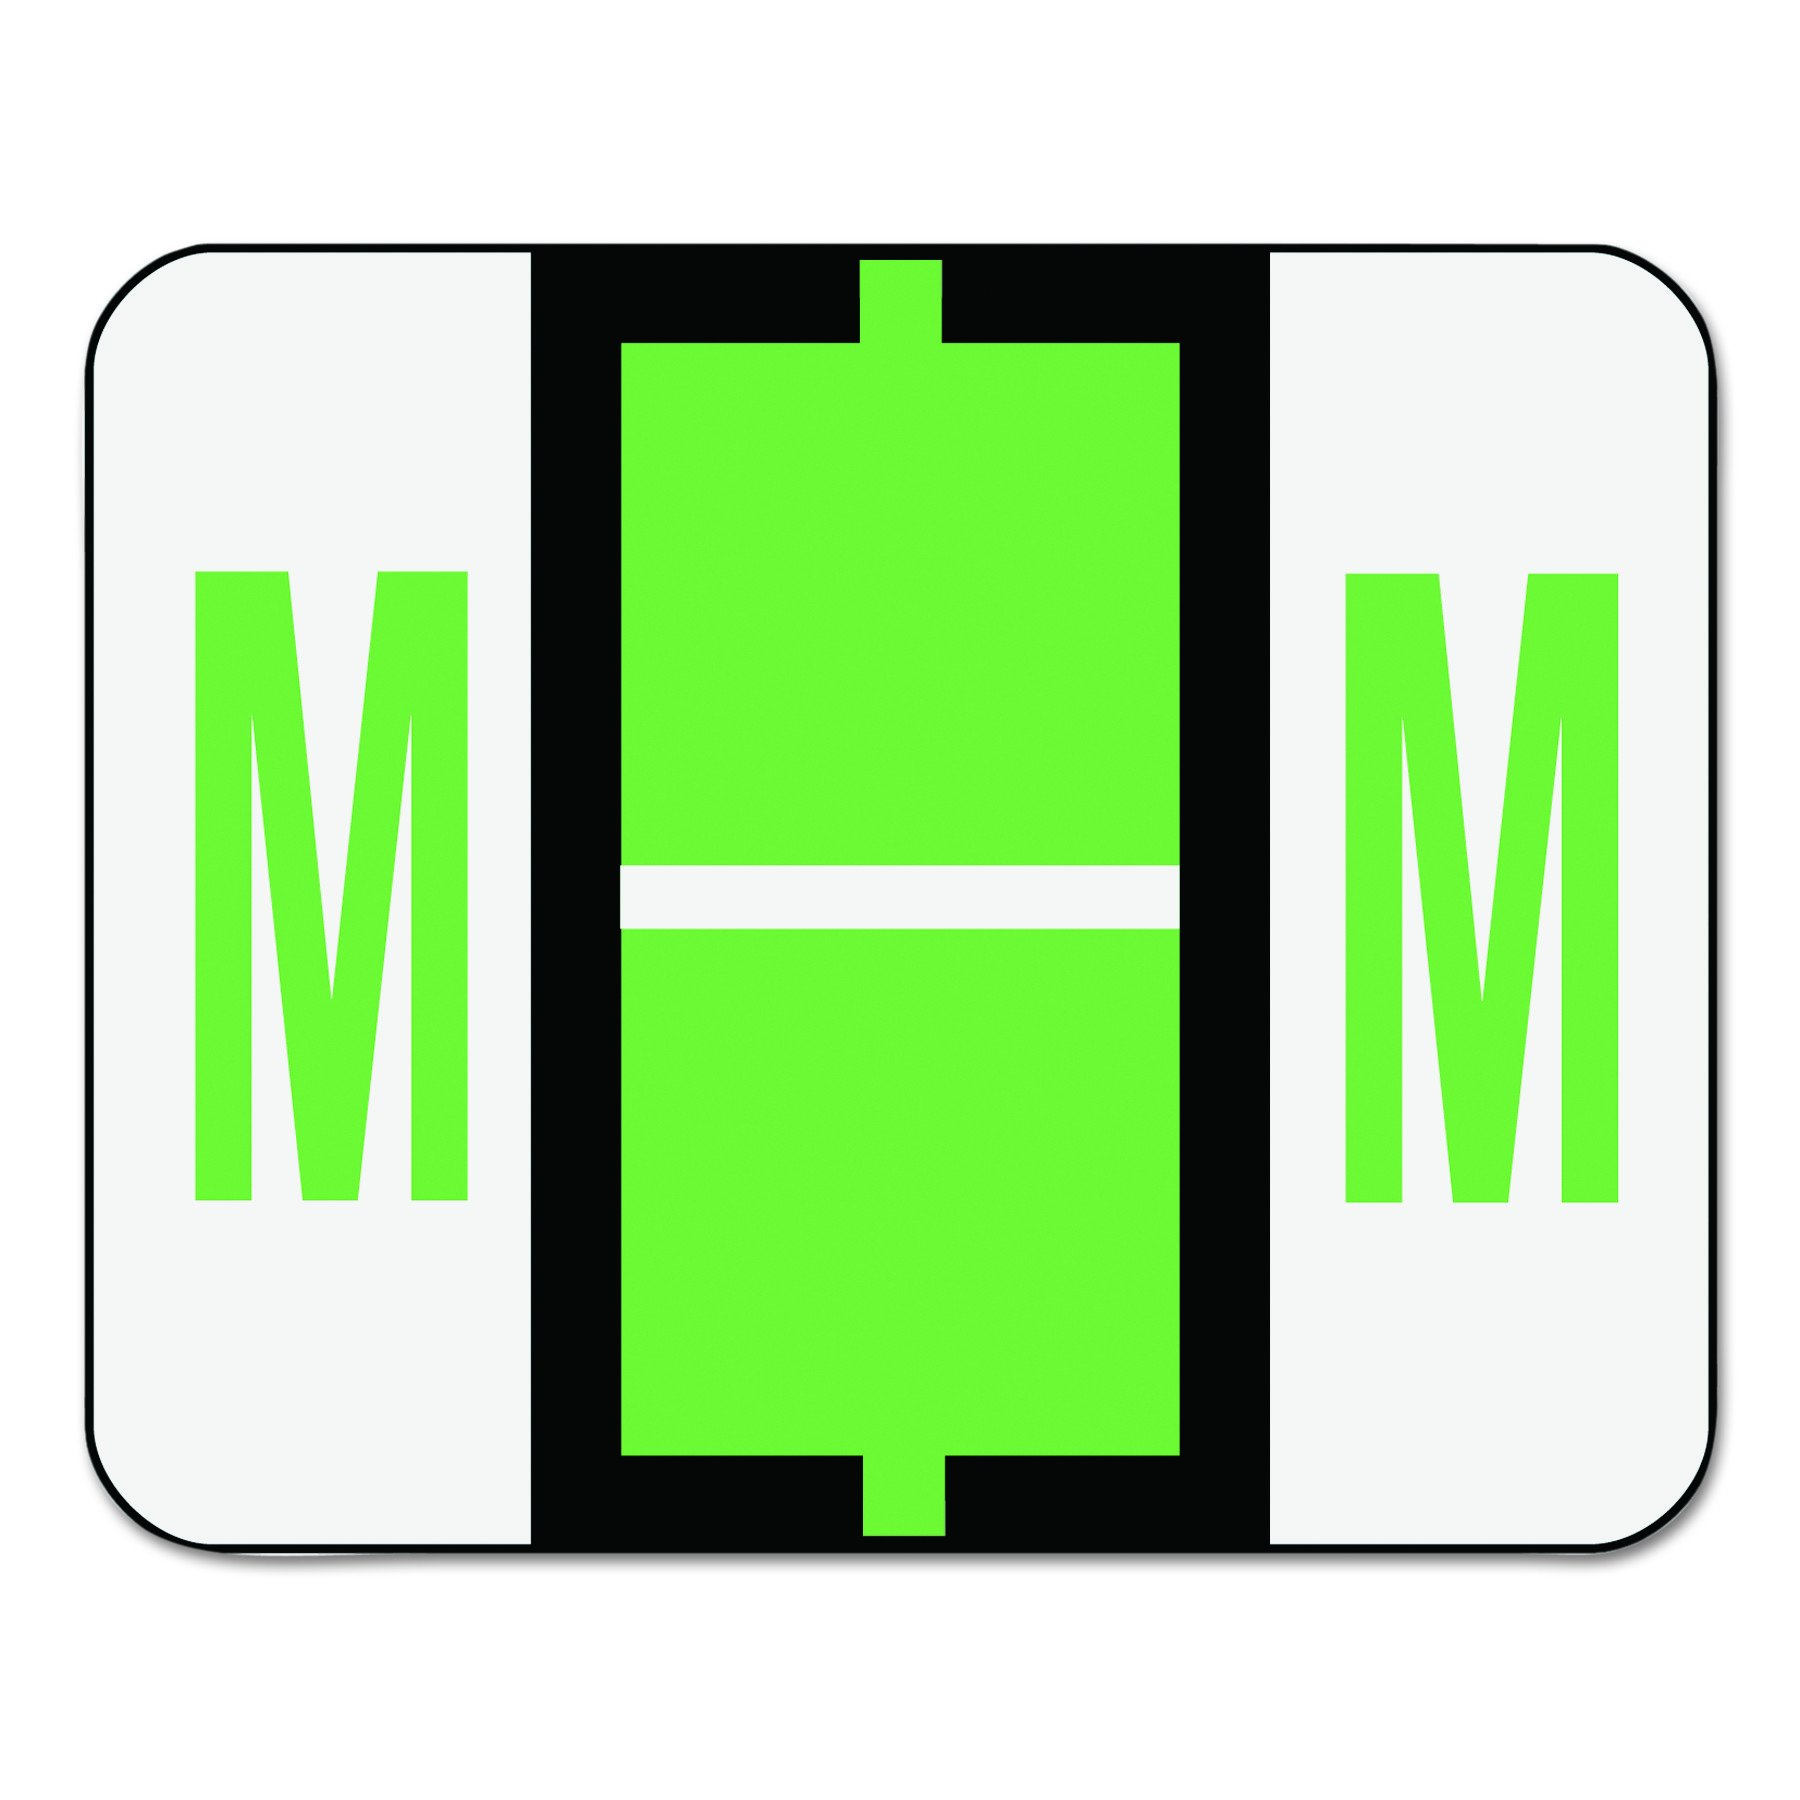 Smead BCCR Bar-Style Alphabetic Color-Coded Labels, Letter M, Light Green,/White Bar, 500 Labels per Roll (67083) by Smead